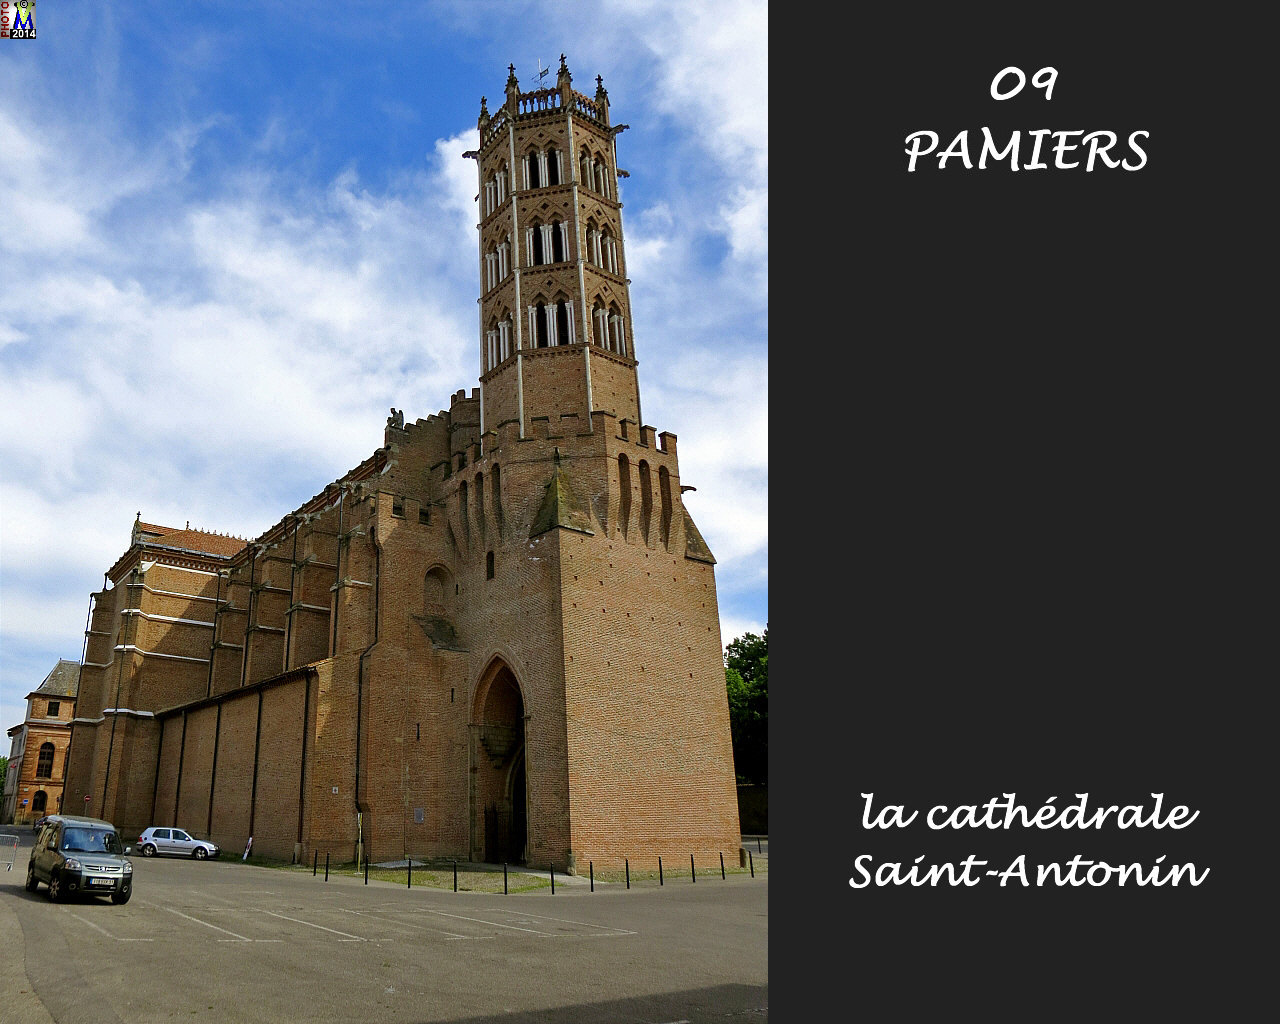 09PAMIERS_cathedrale_100.jpg